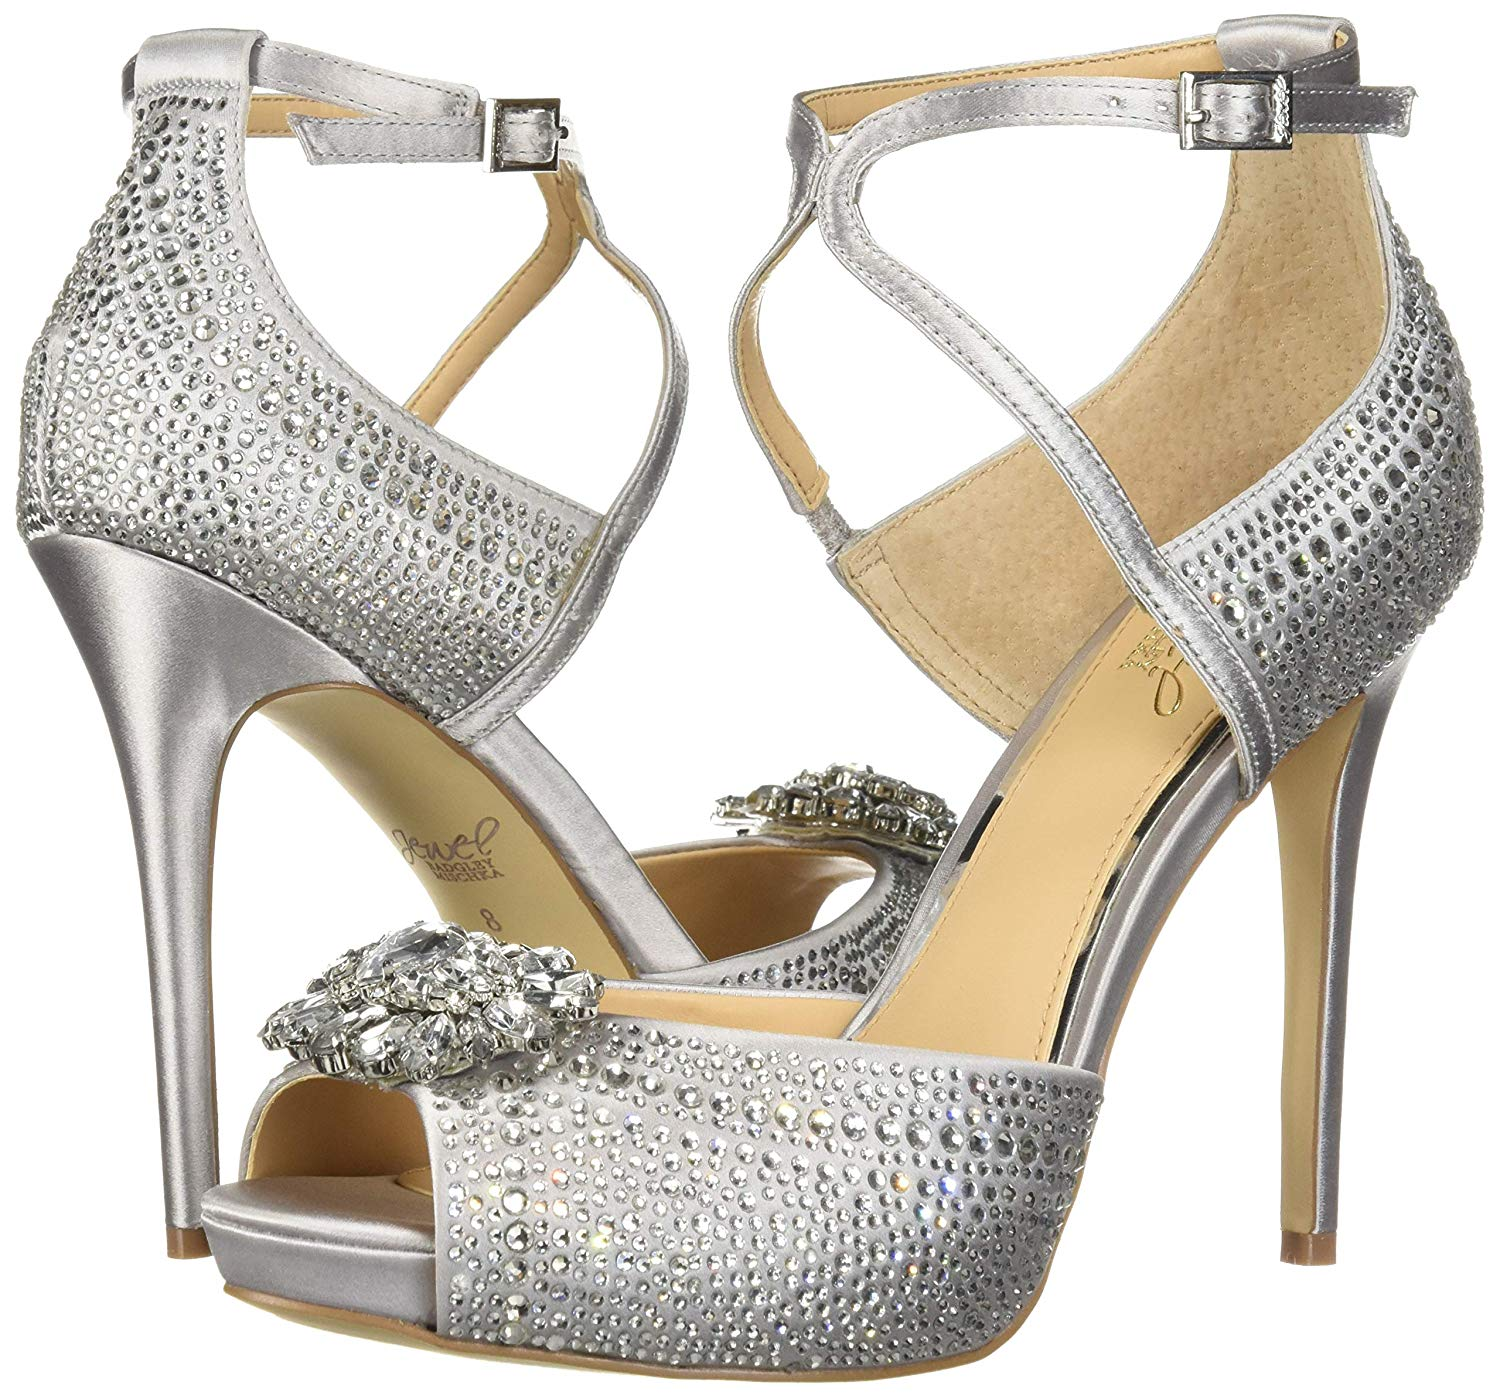 Badgley Mischka Zaina Heeled Sandal Silver Satin